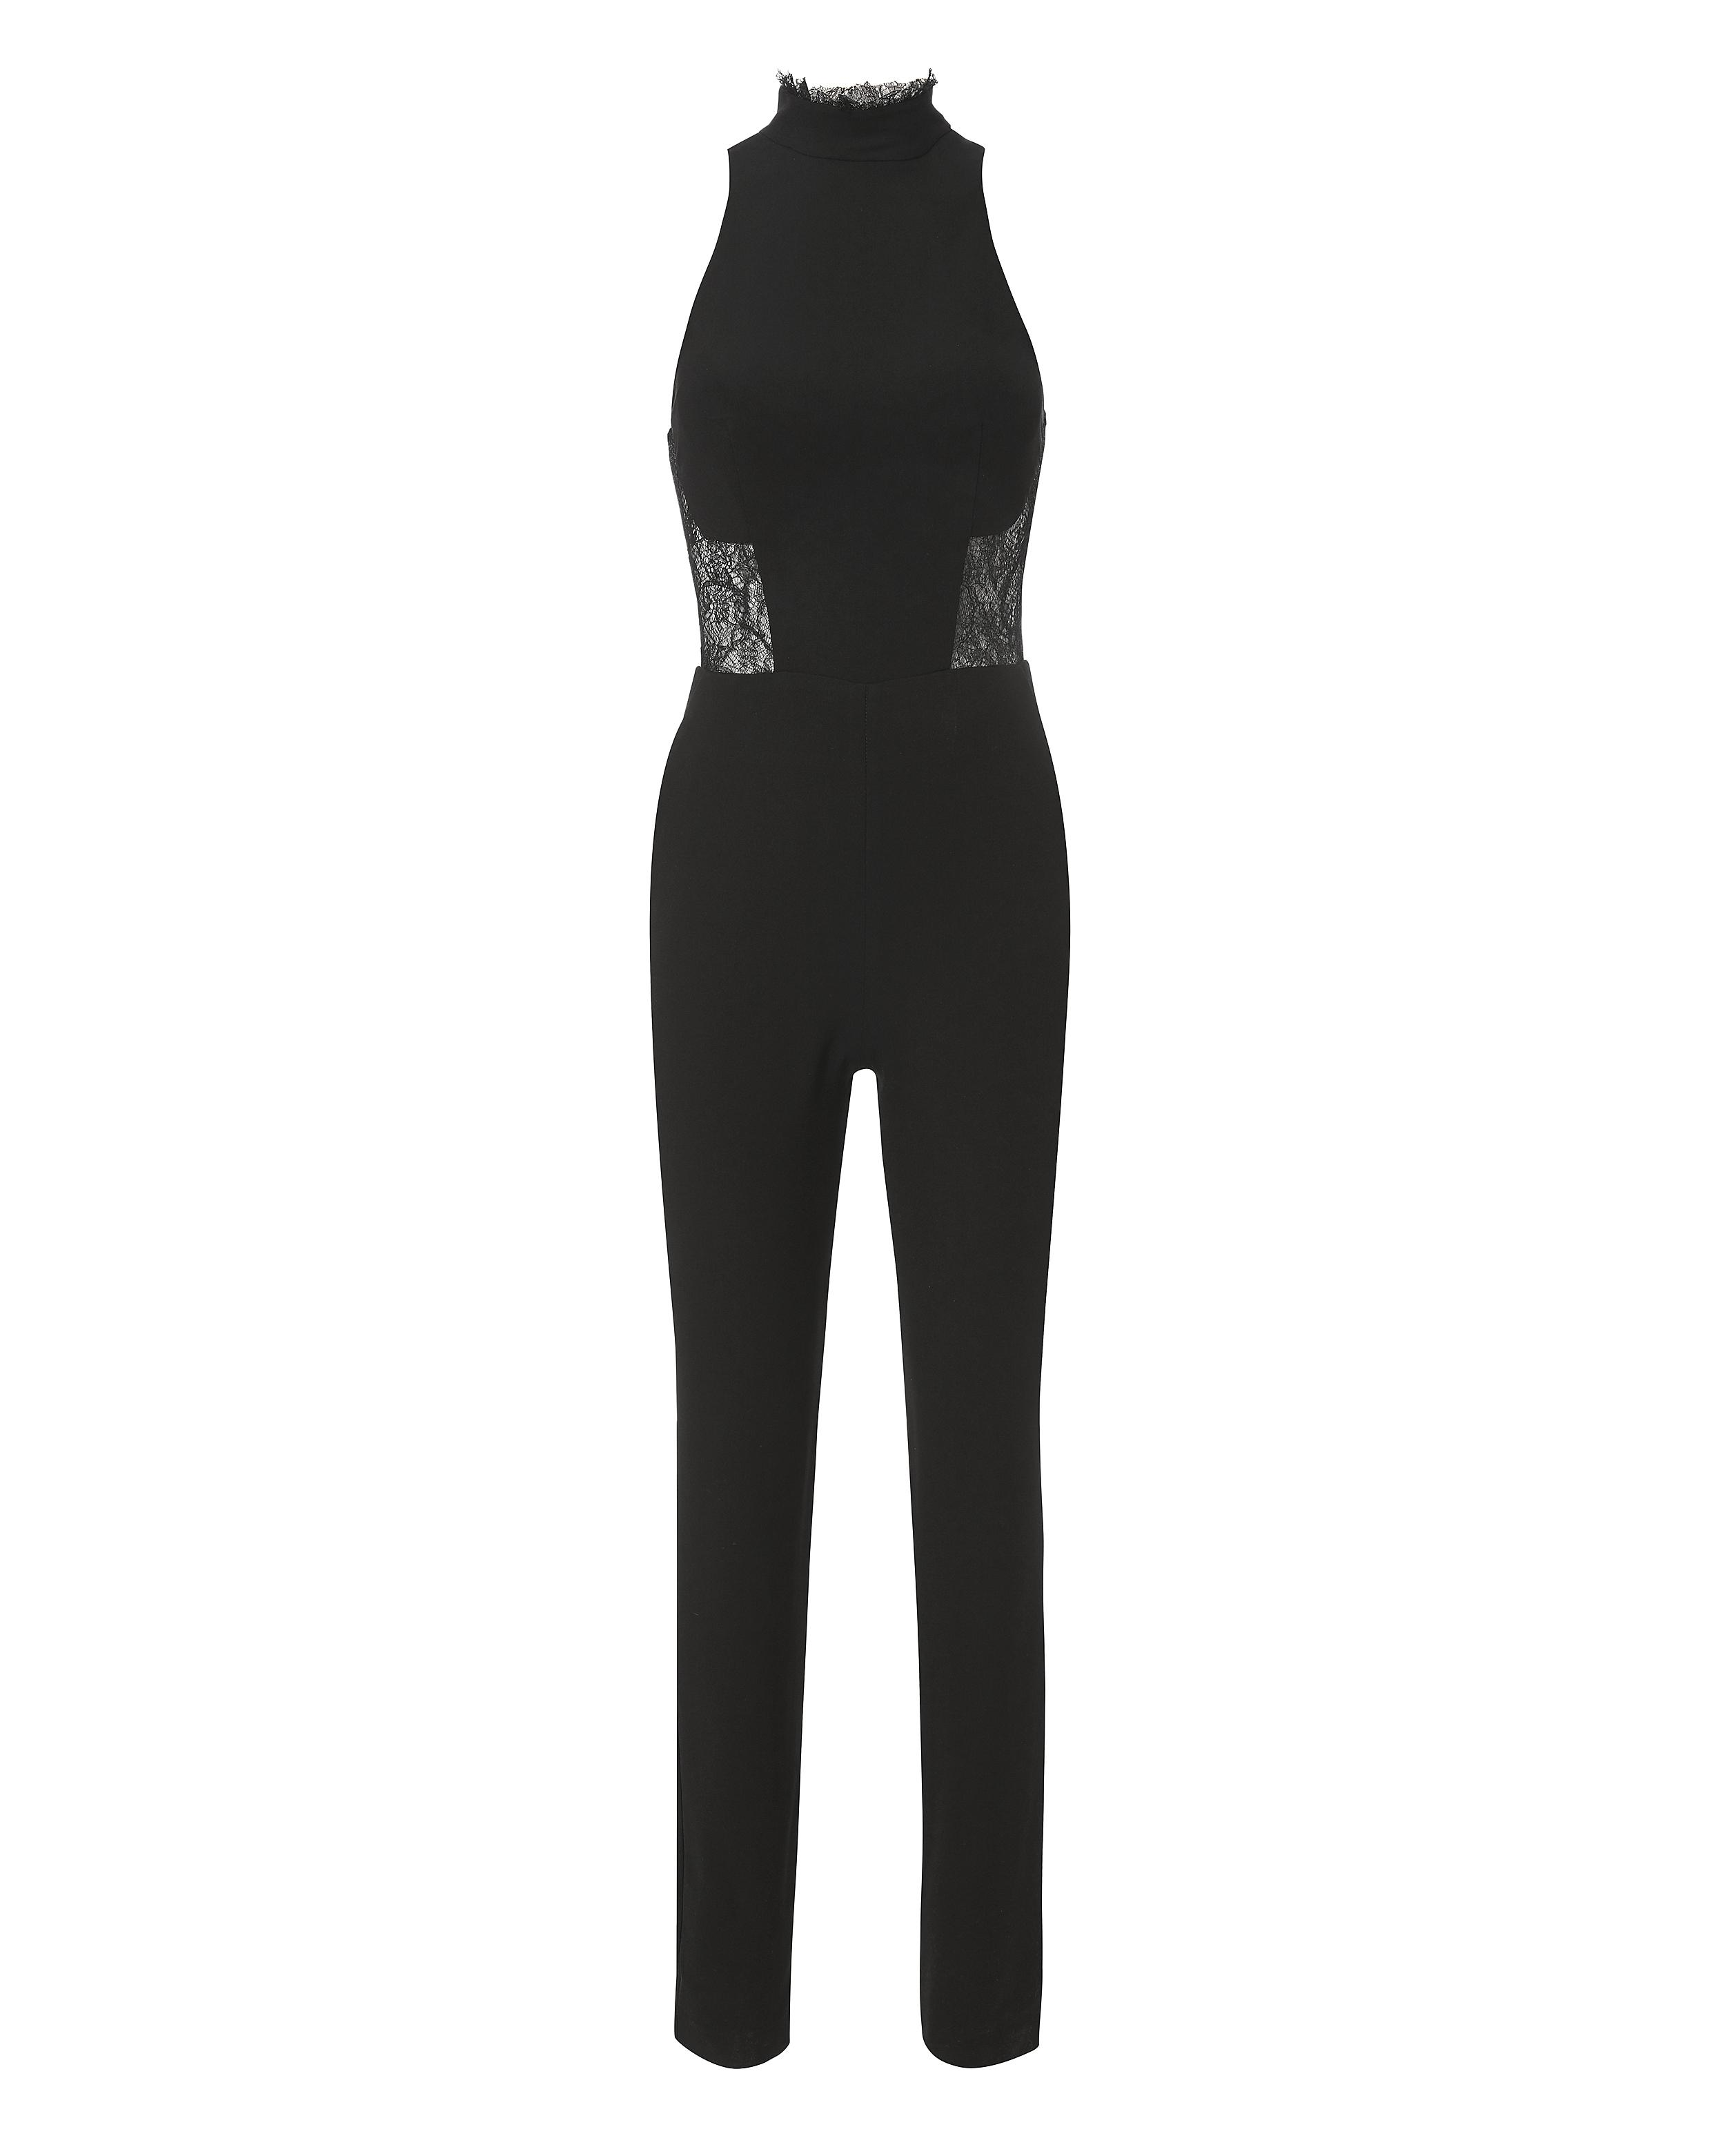 94784559e89b Lyst - Nicholas Mock Neck Lace Inset Jumpsuit in Black